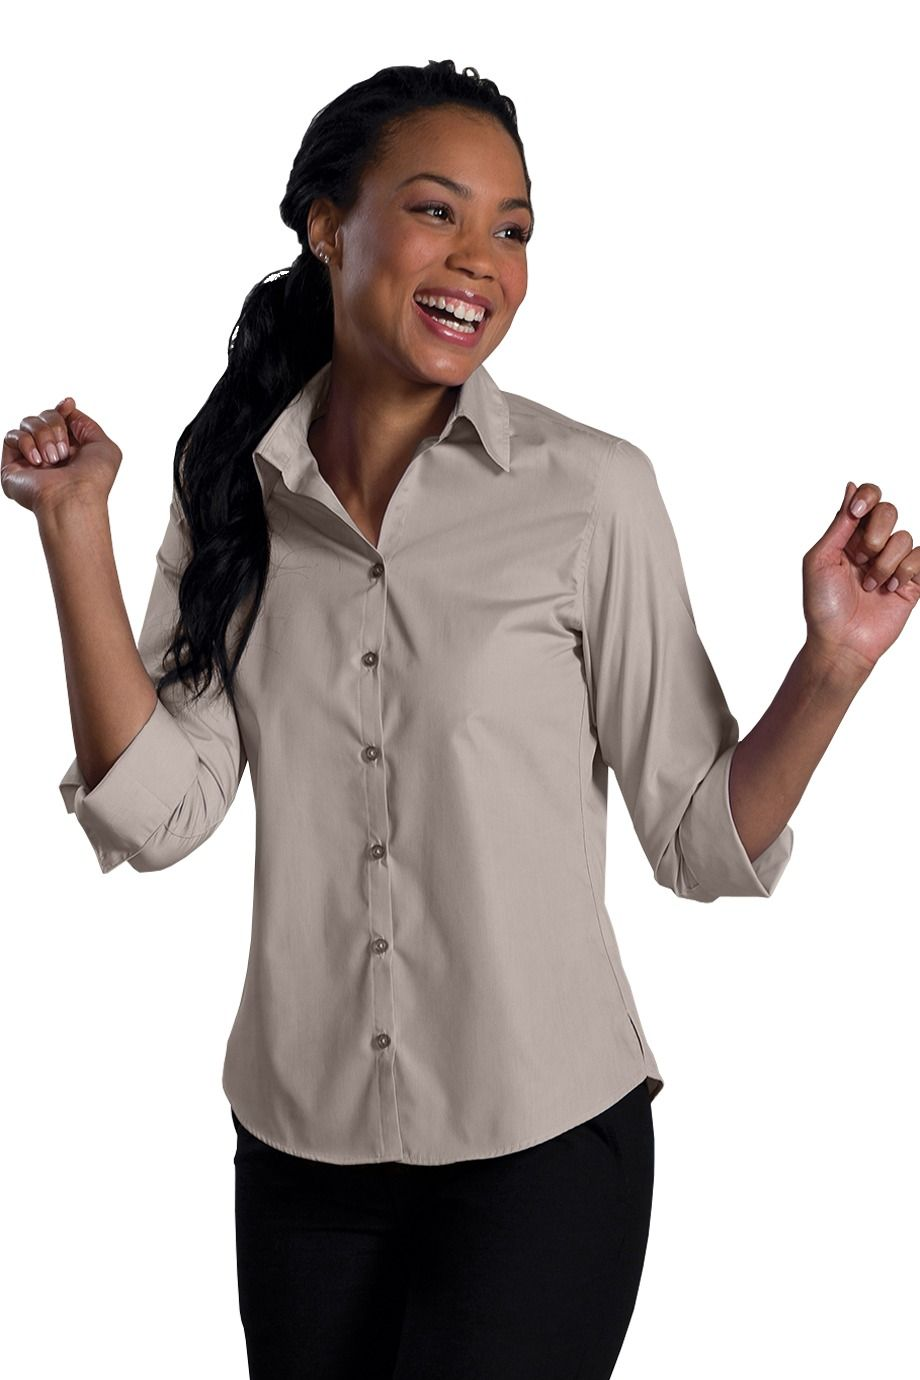 Women's Mocha Poplin 3-4 Open Neck Blouse